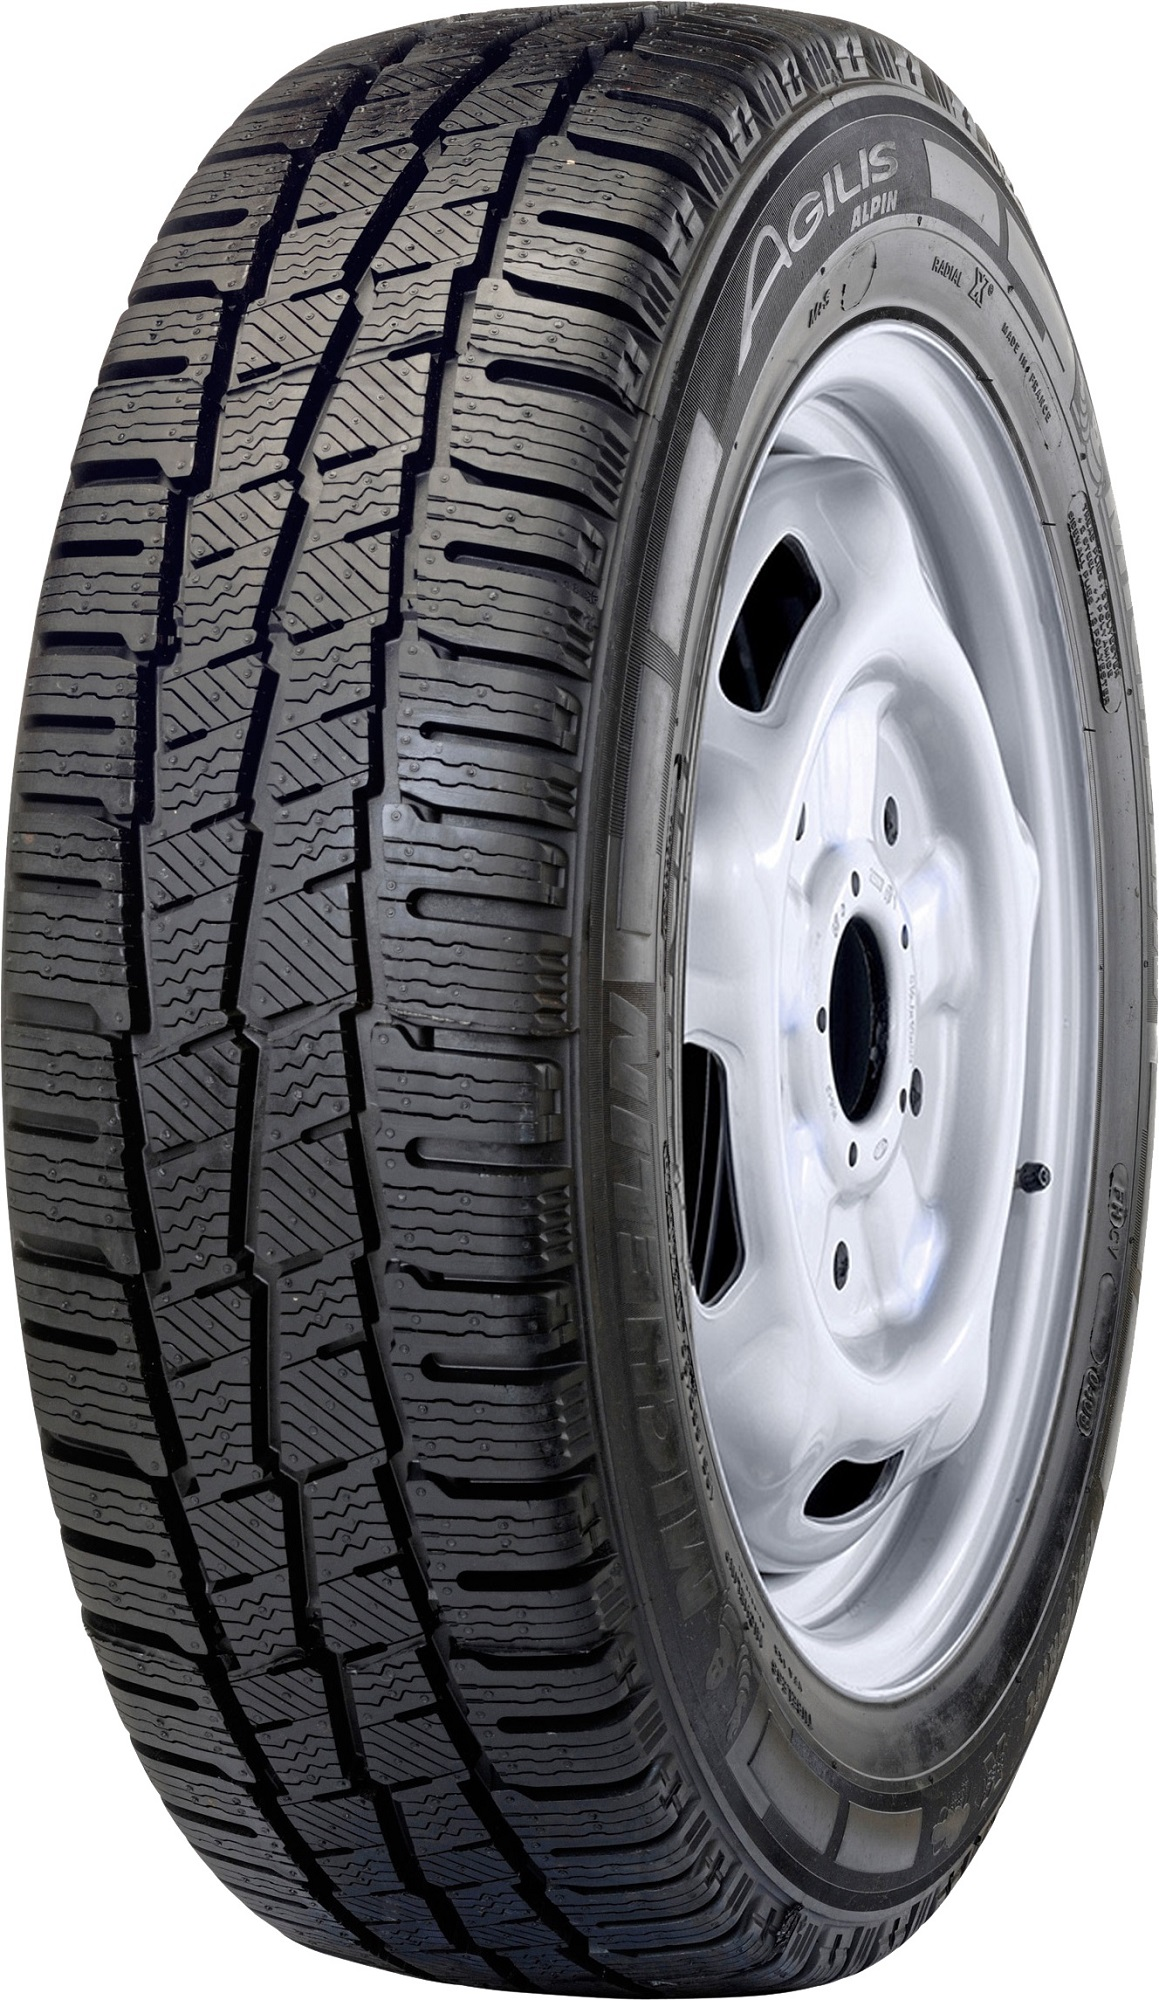 Anvelopa iarna MICHELIN AGILIS ALPIN 205/75 R16 110R